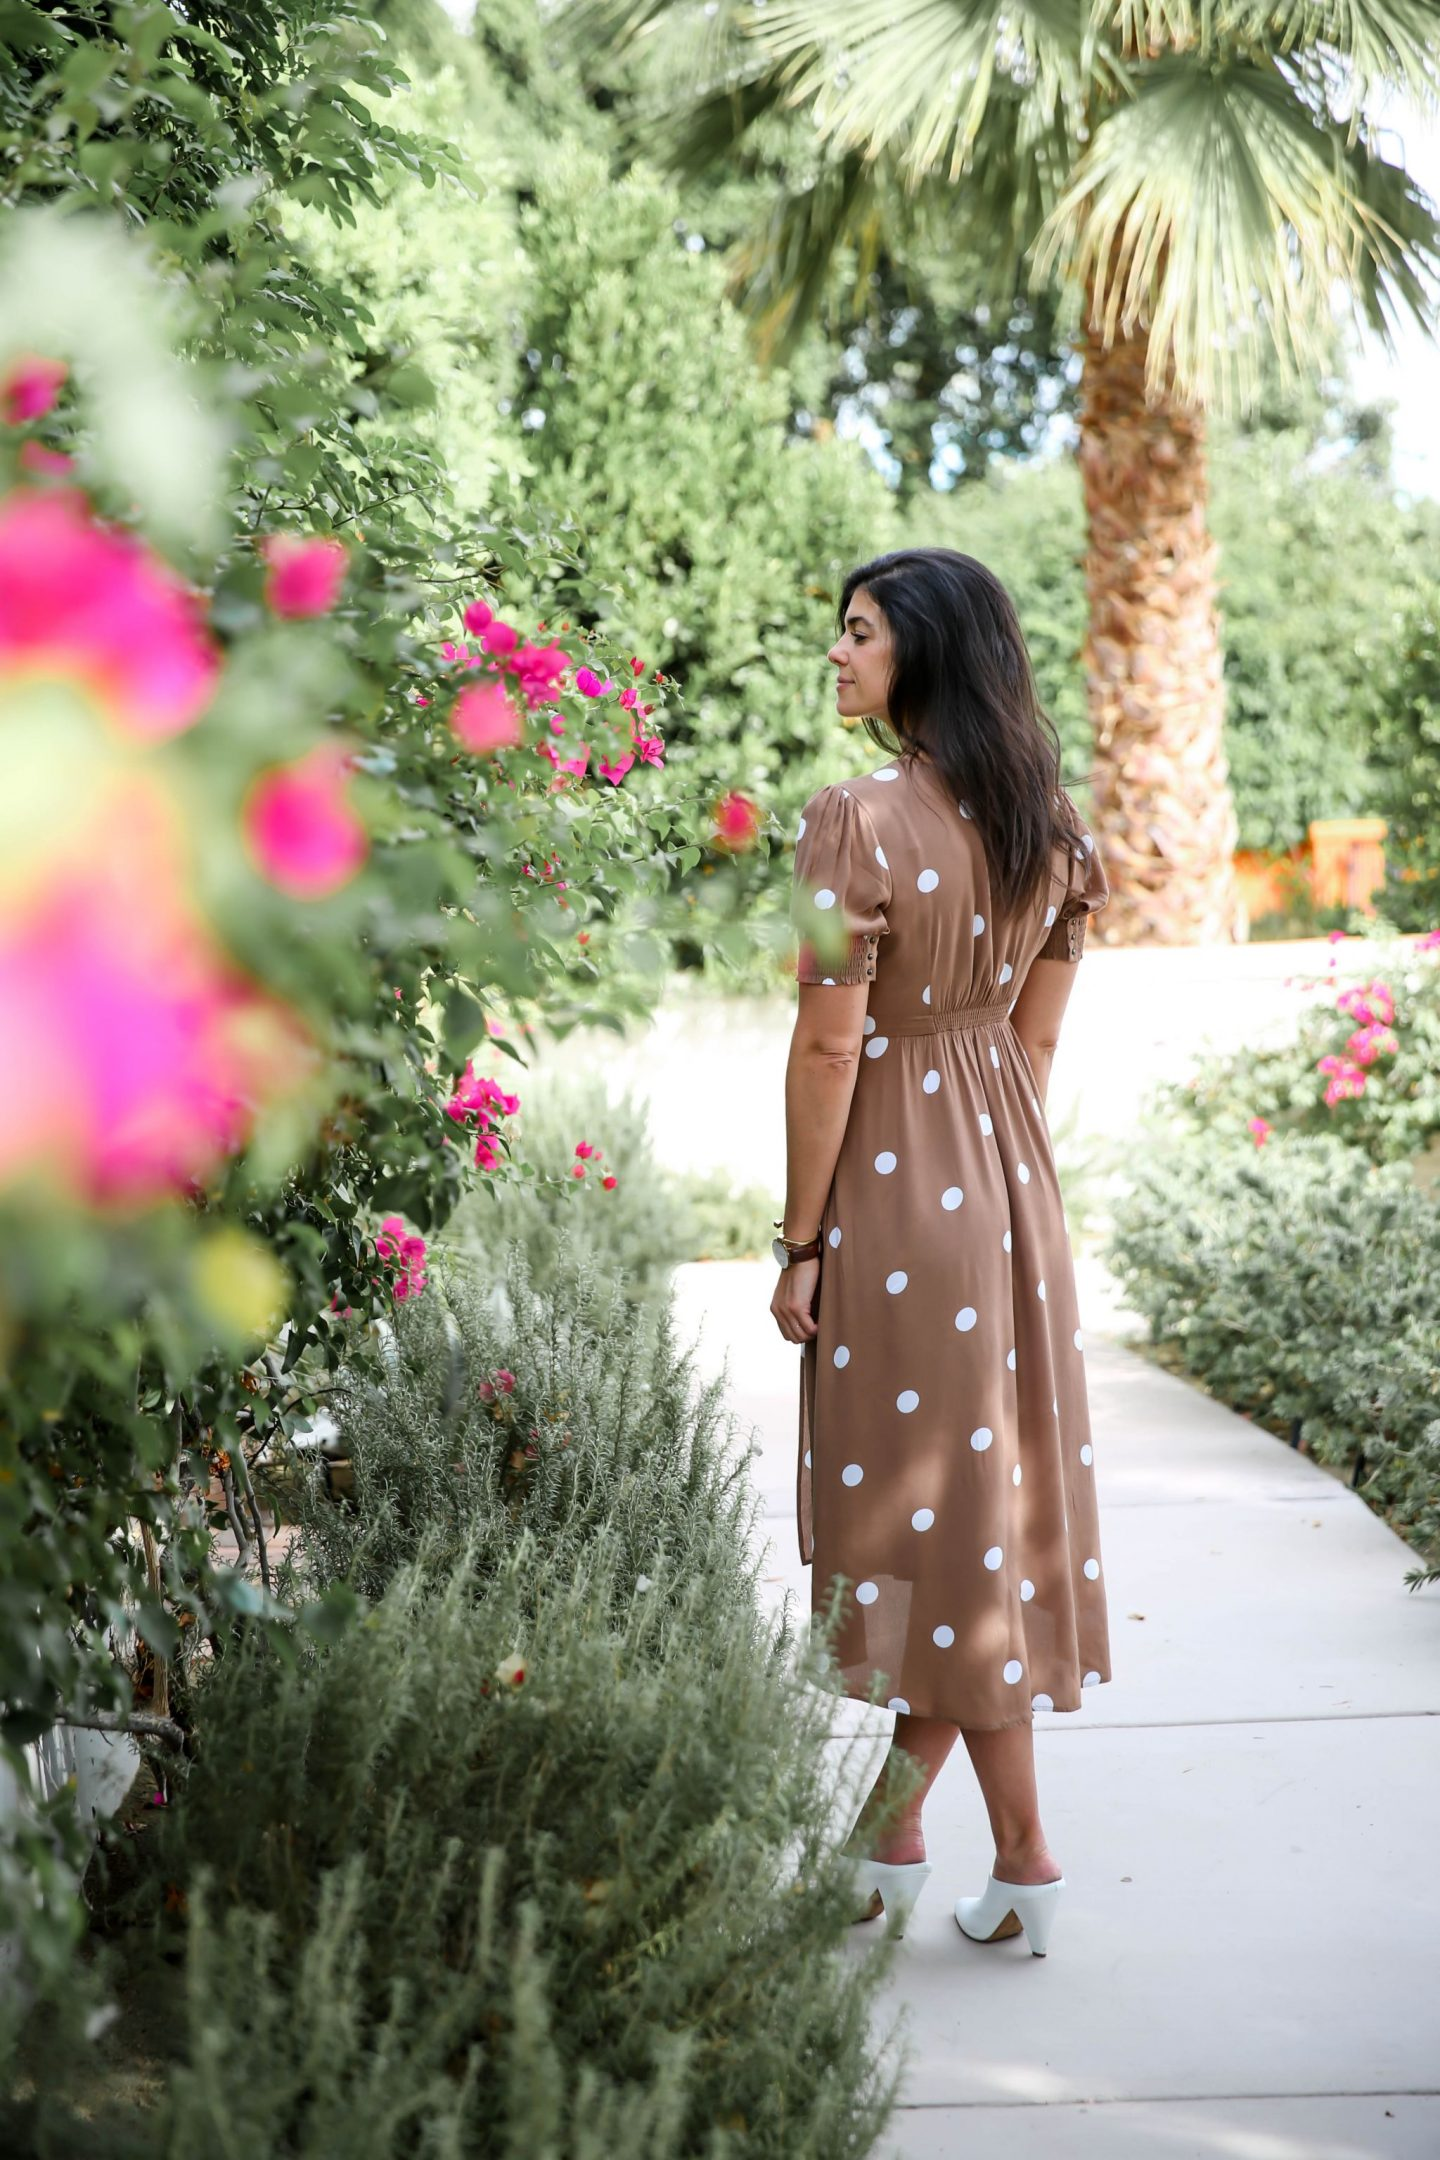 Palm Springs - polka dot dress - Lauren schwaiger